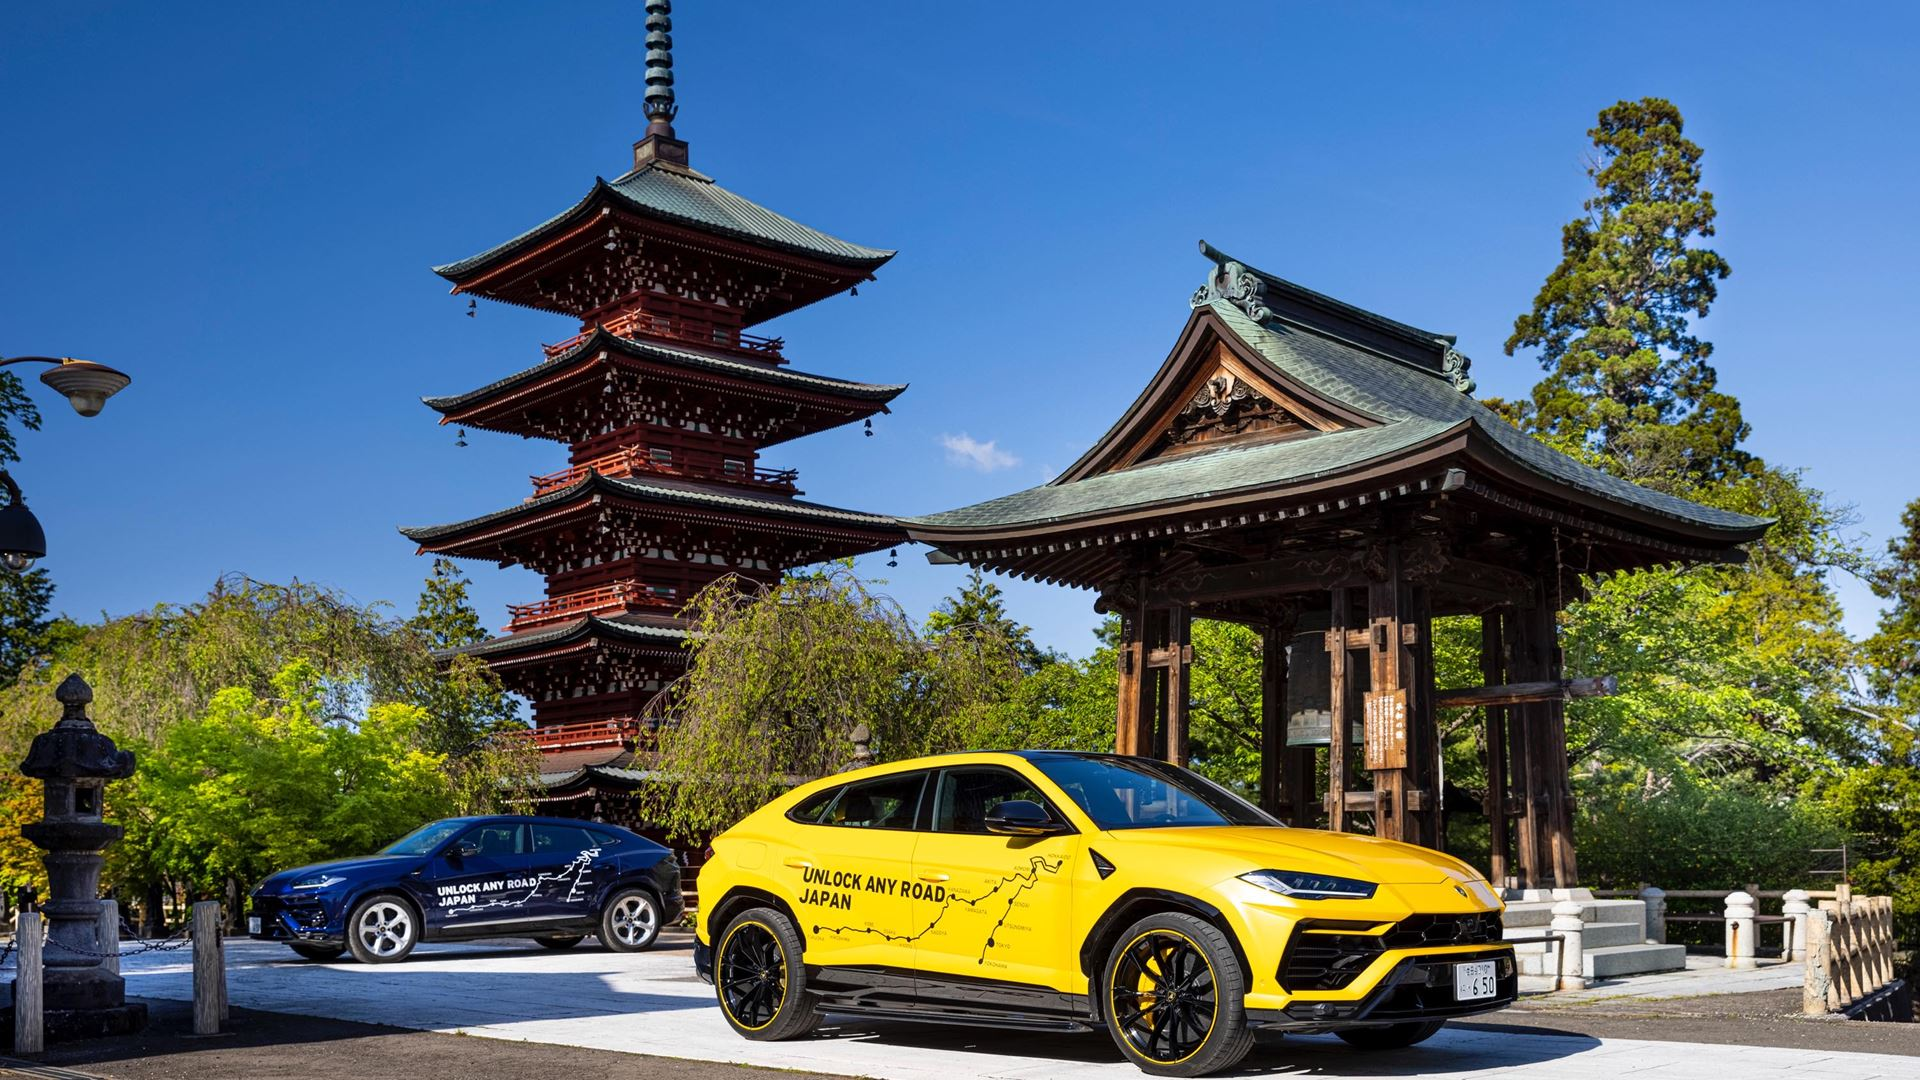 """""""UNLOCK ANY ROAD JAPAN"""" Urus expedition over 6.500 Km across Japan - Image 8"""